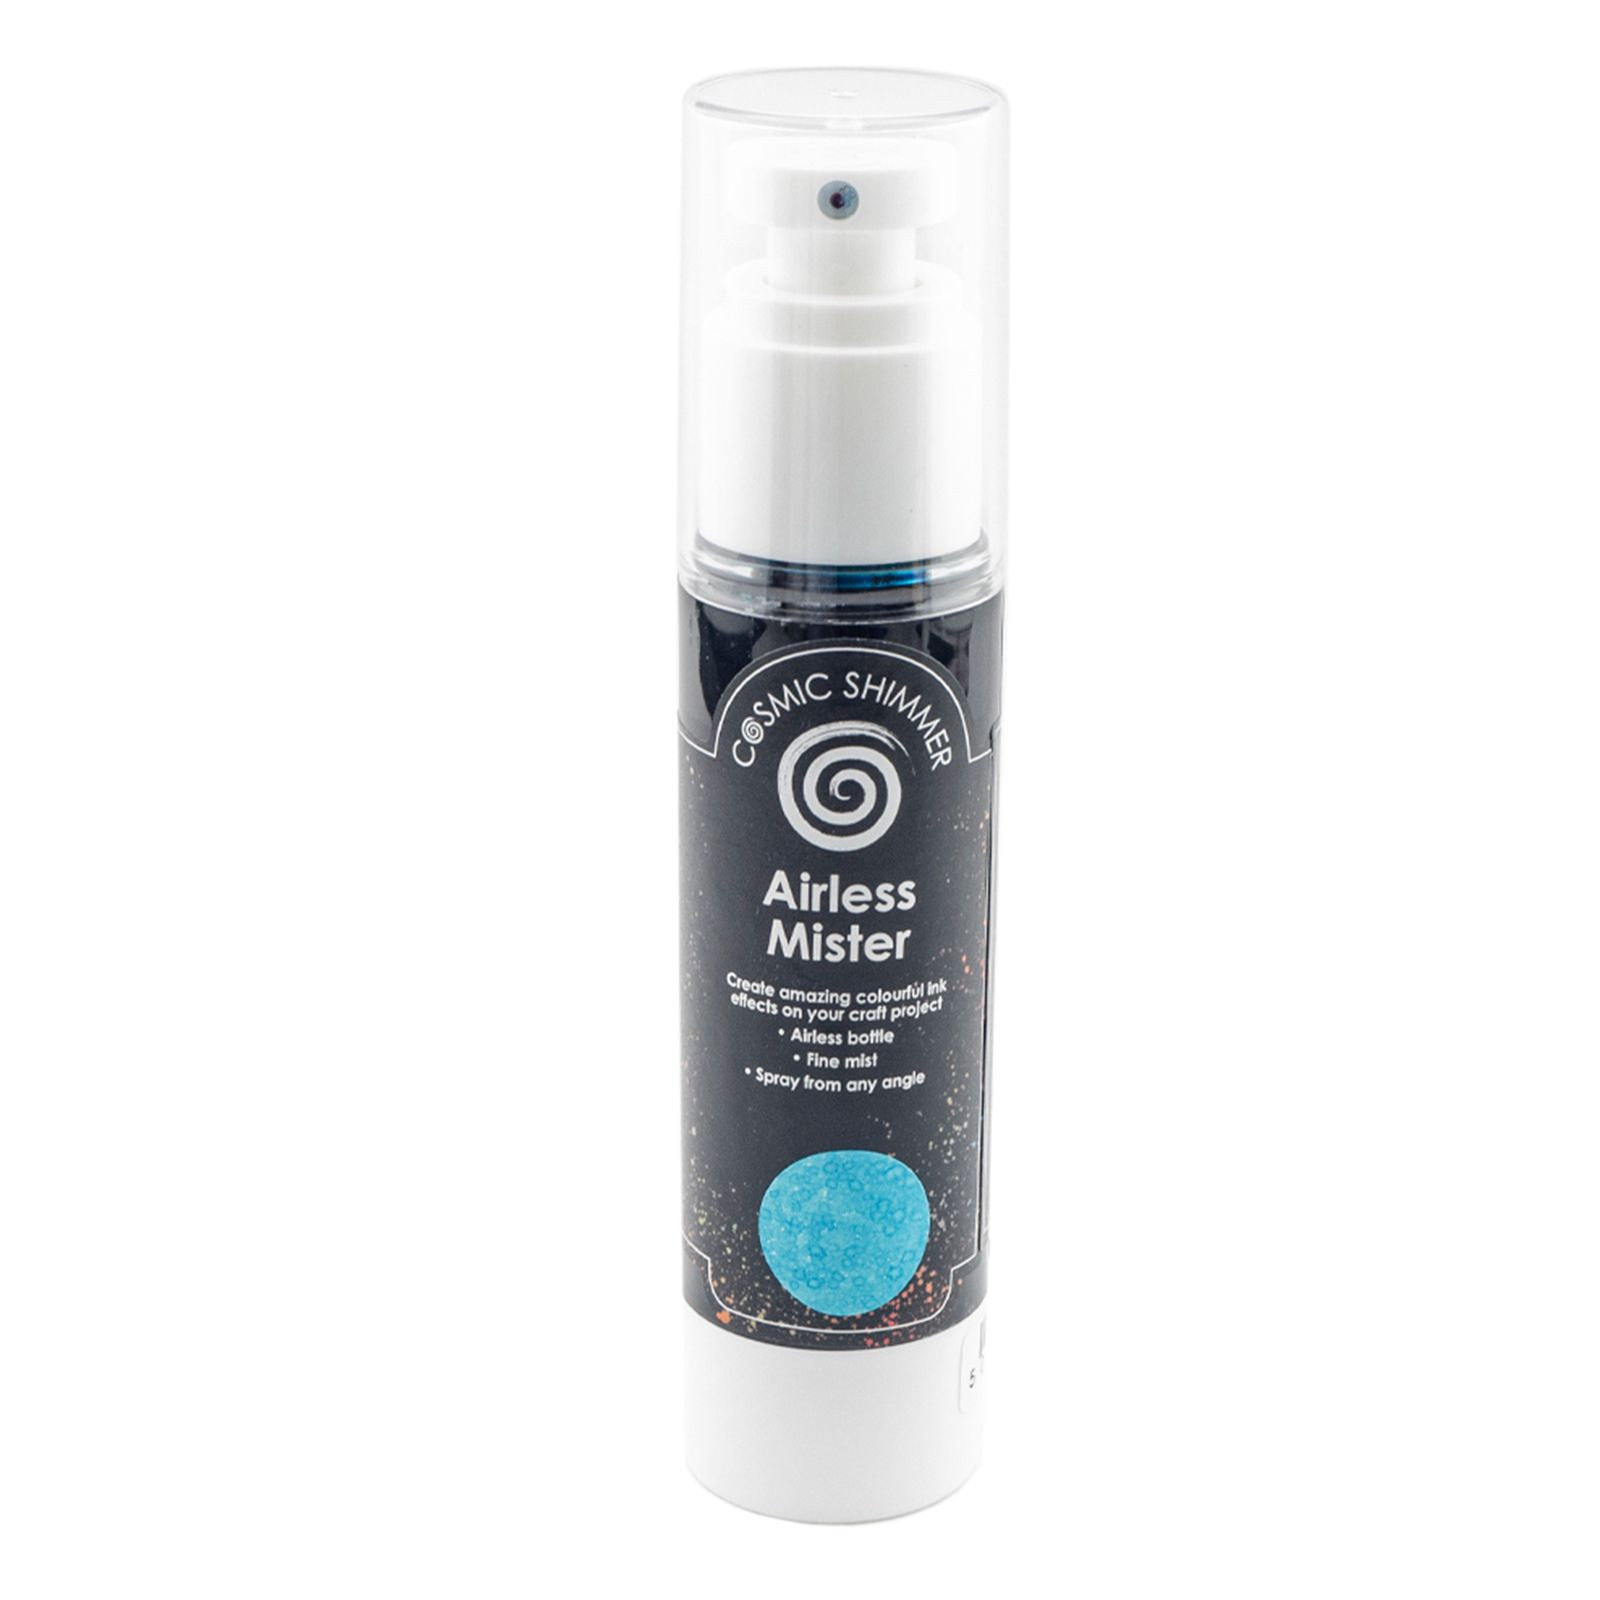 CE Cosmic shimmer airless mister pacific